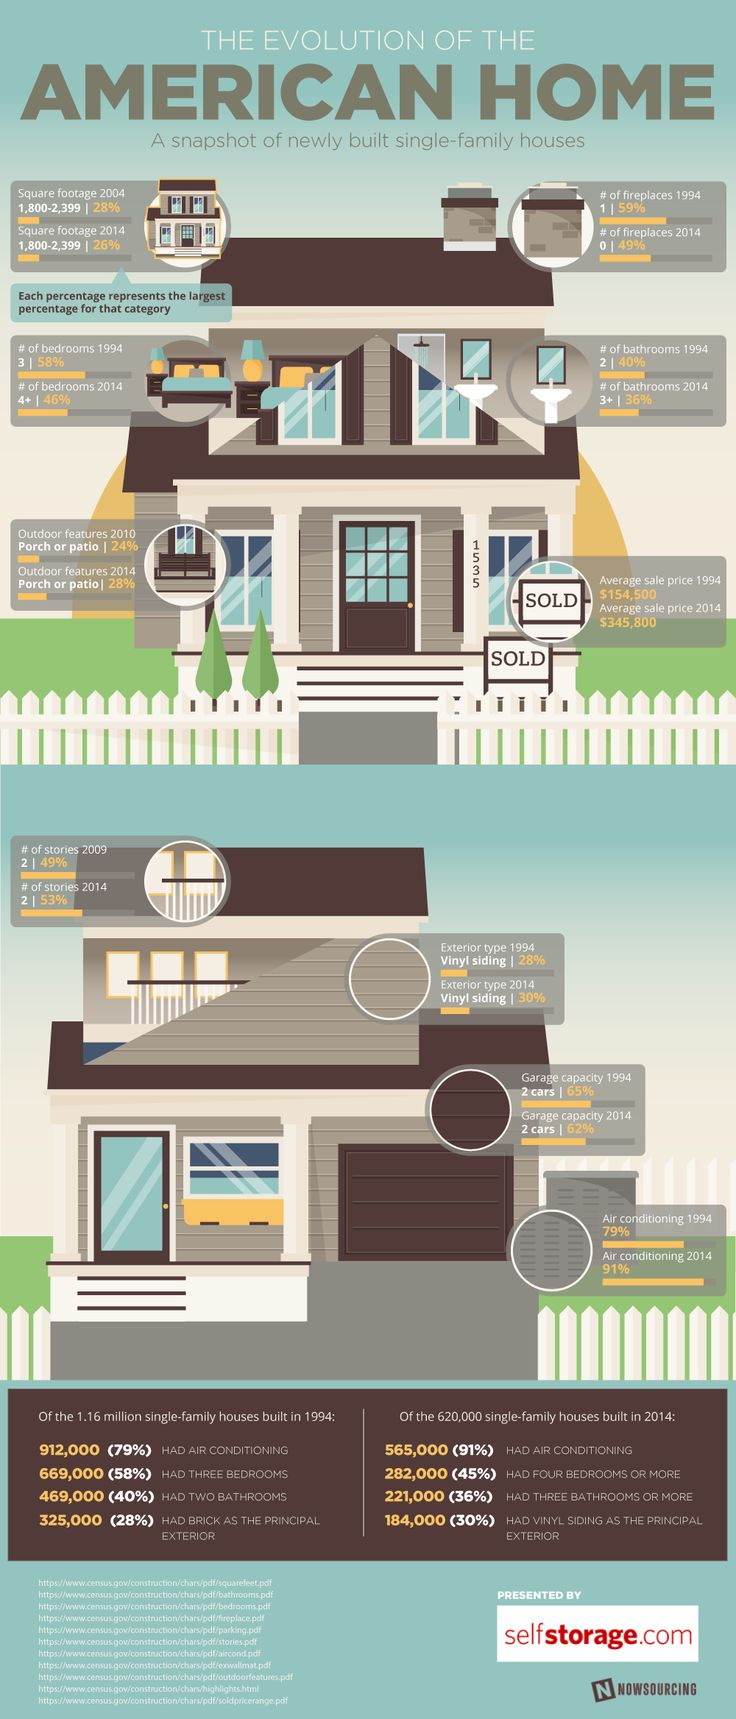 The Evolution of the American Home [INFOGRAPHIC]